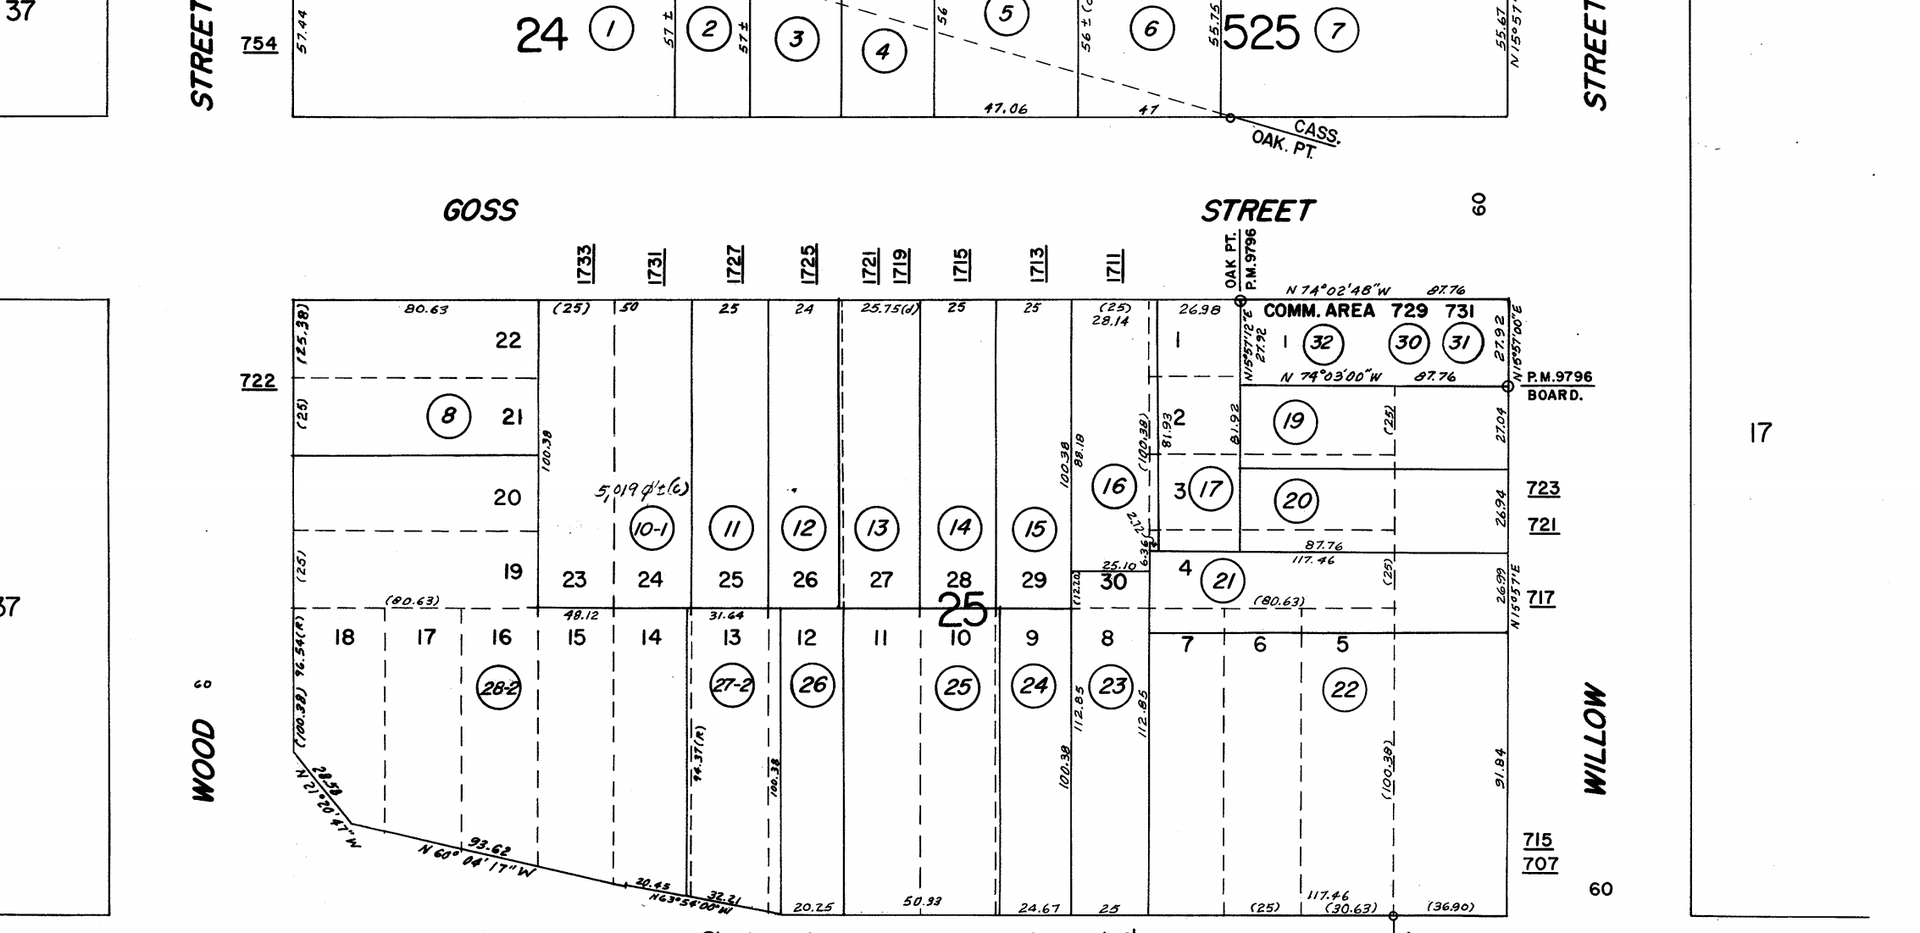 map of 7th street block.png